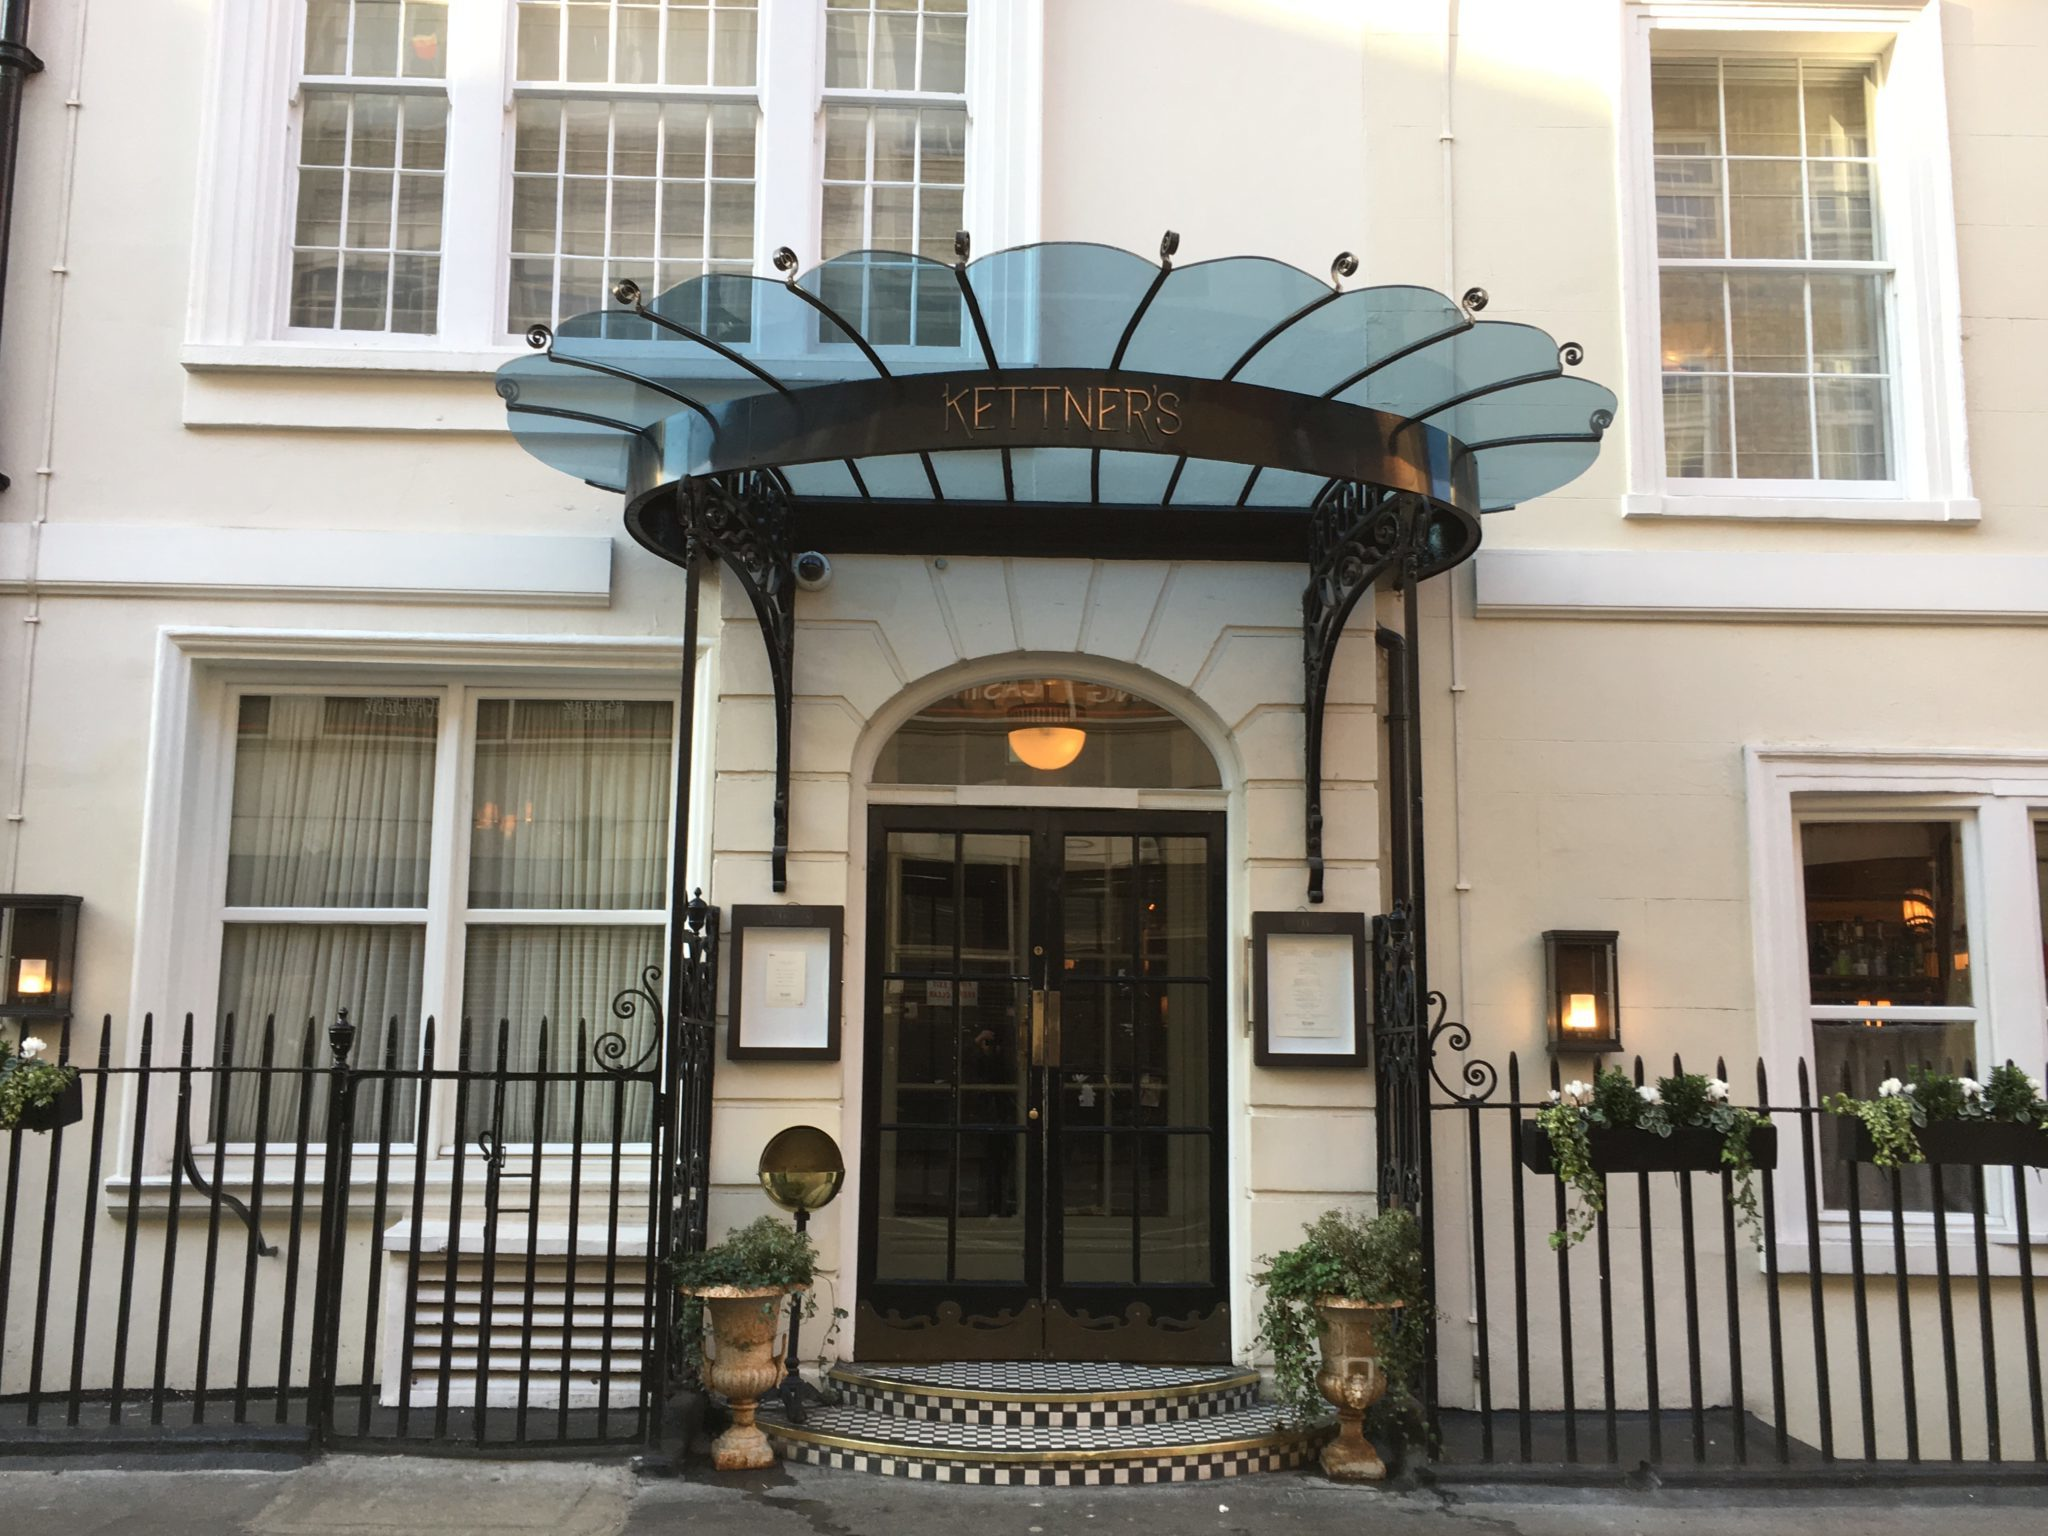 Kettner's Townhouse exterior